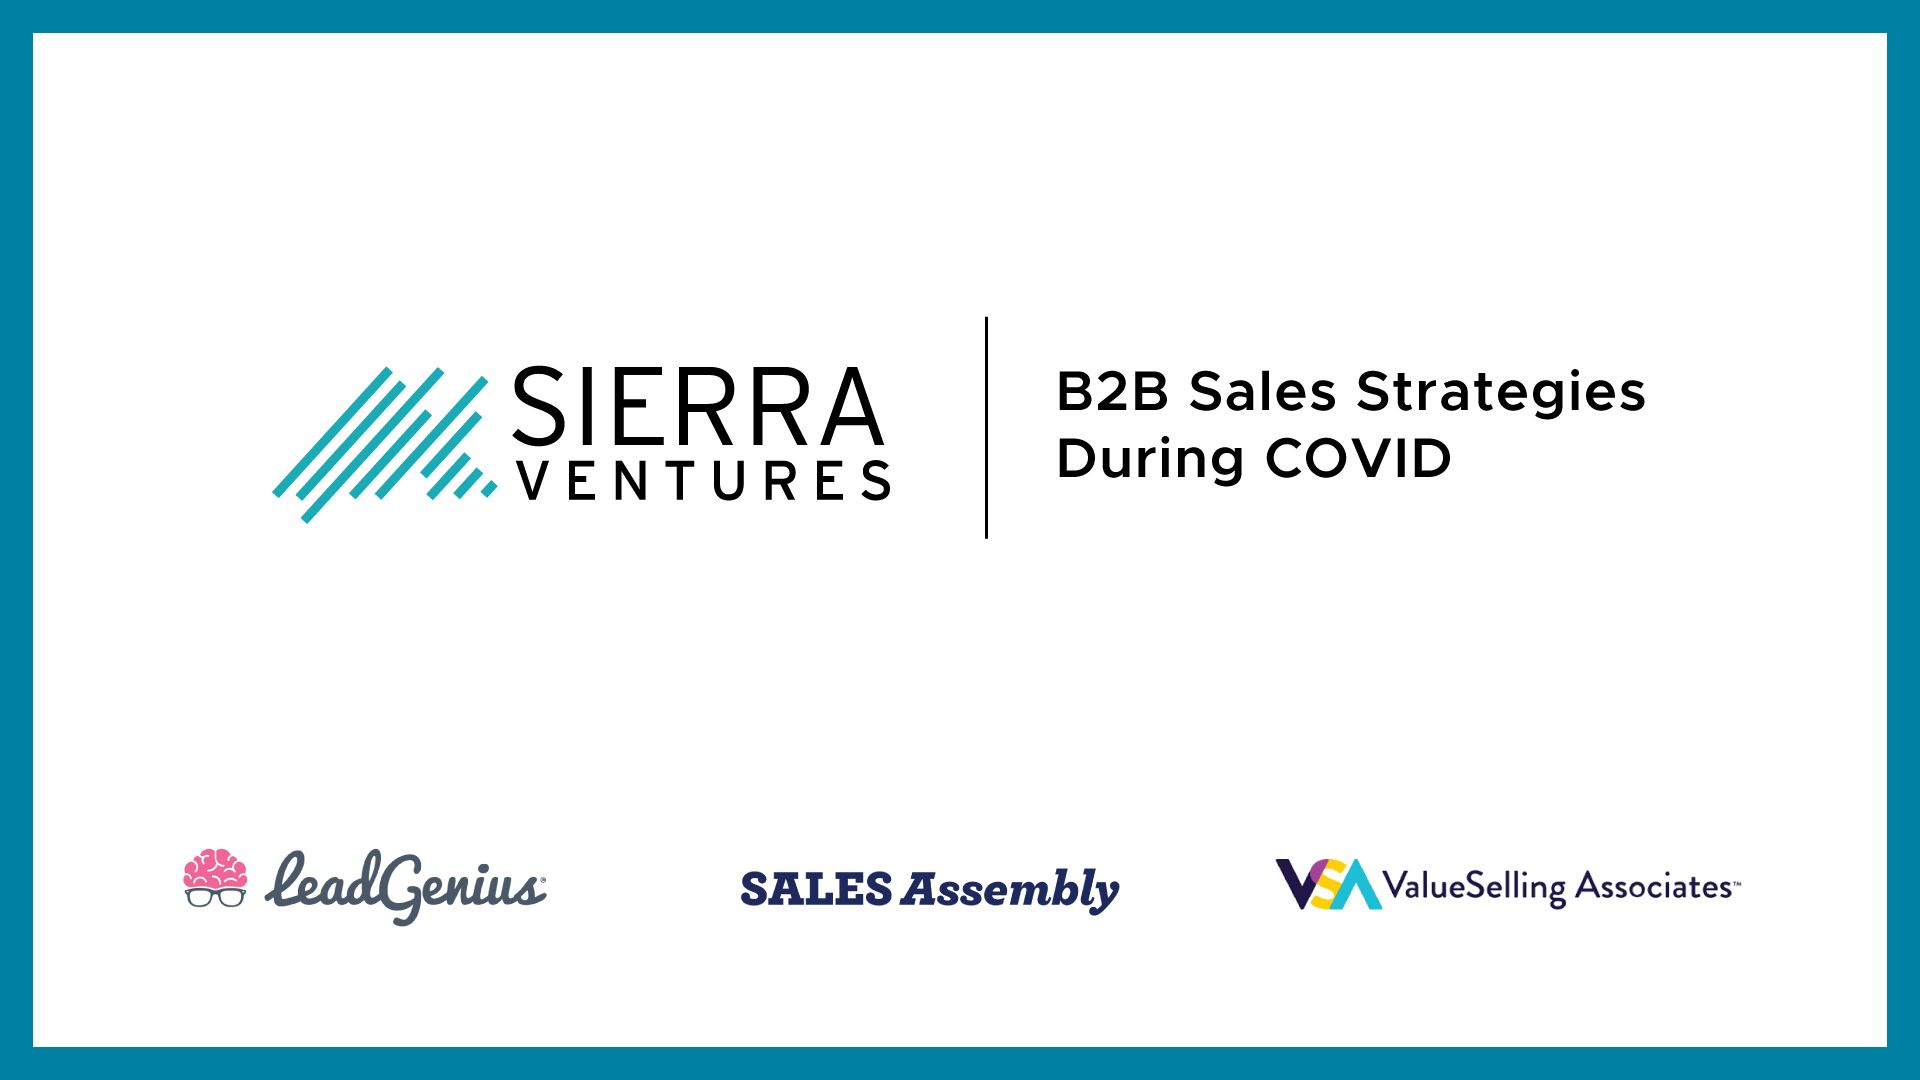 B2B Sales Strategies During COVID - Webinar with Sierra Ventures